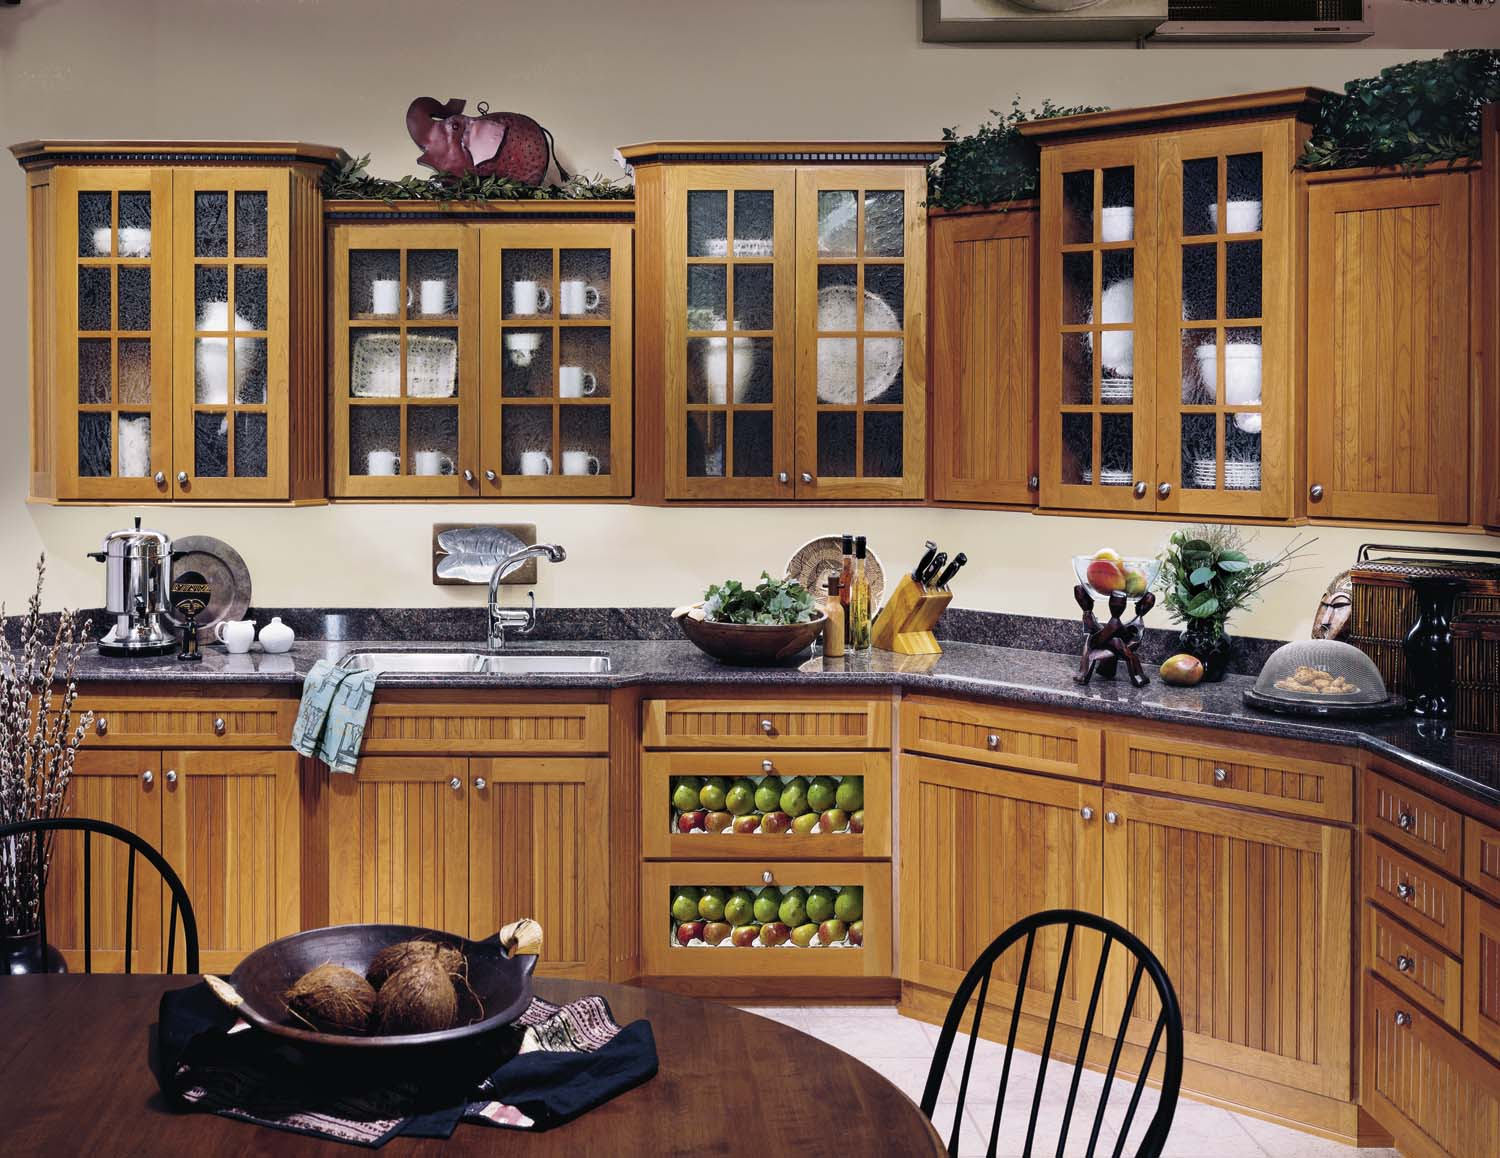 1000 options in kitchen cabinets how to choose best for for The kitchen cupboard